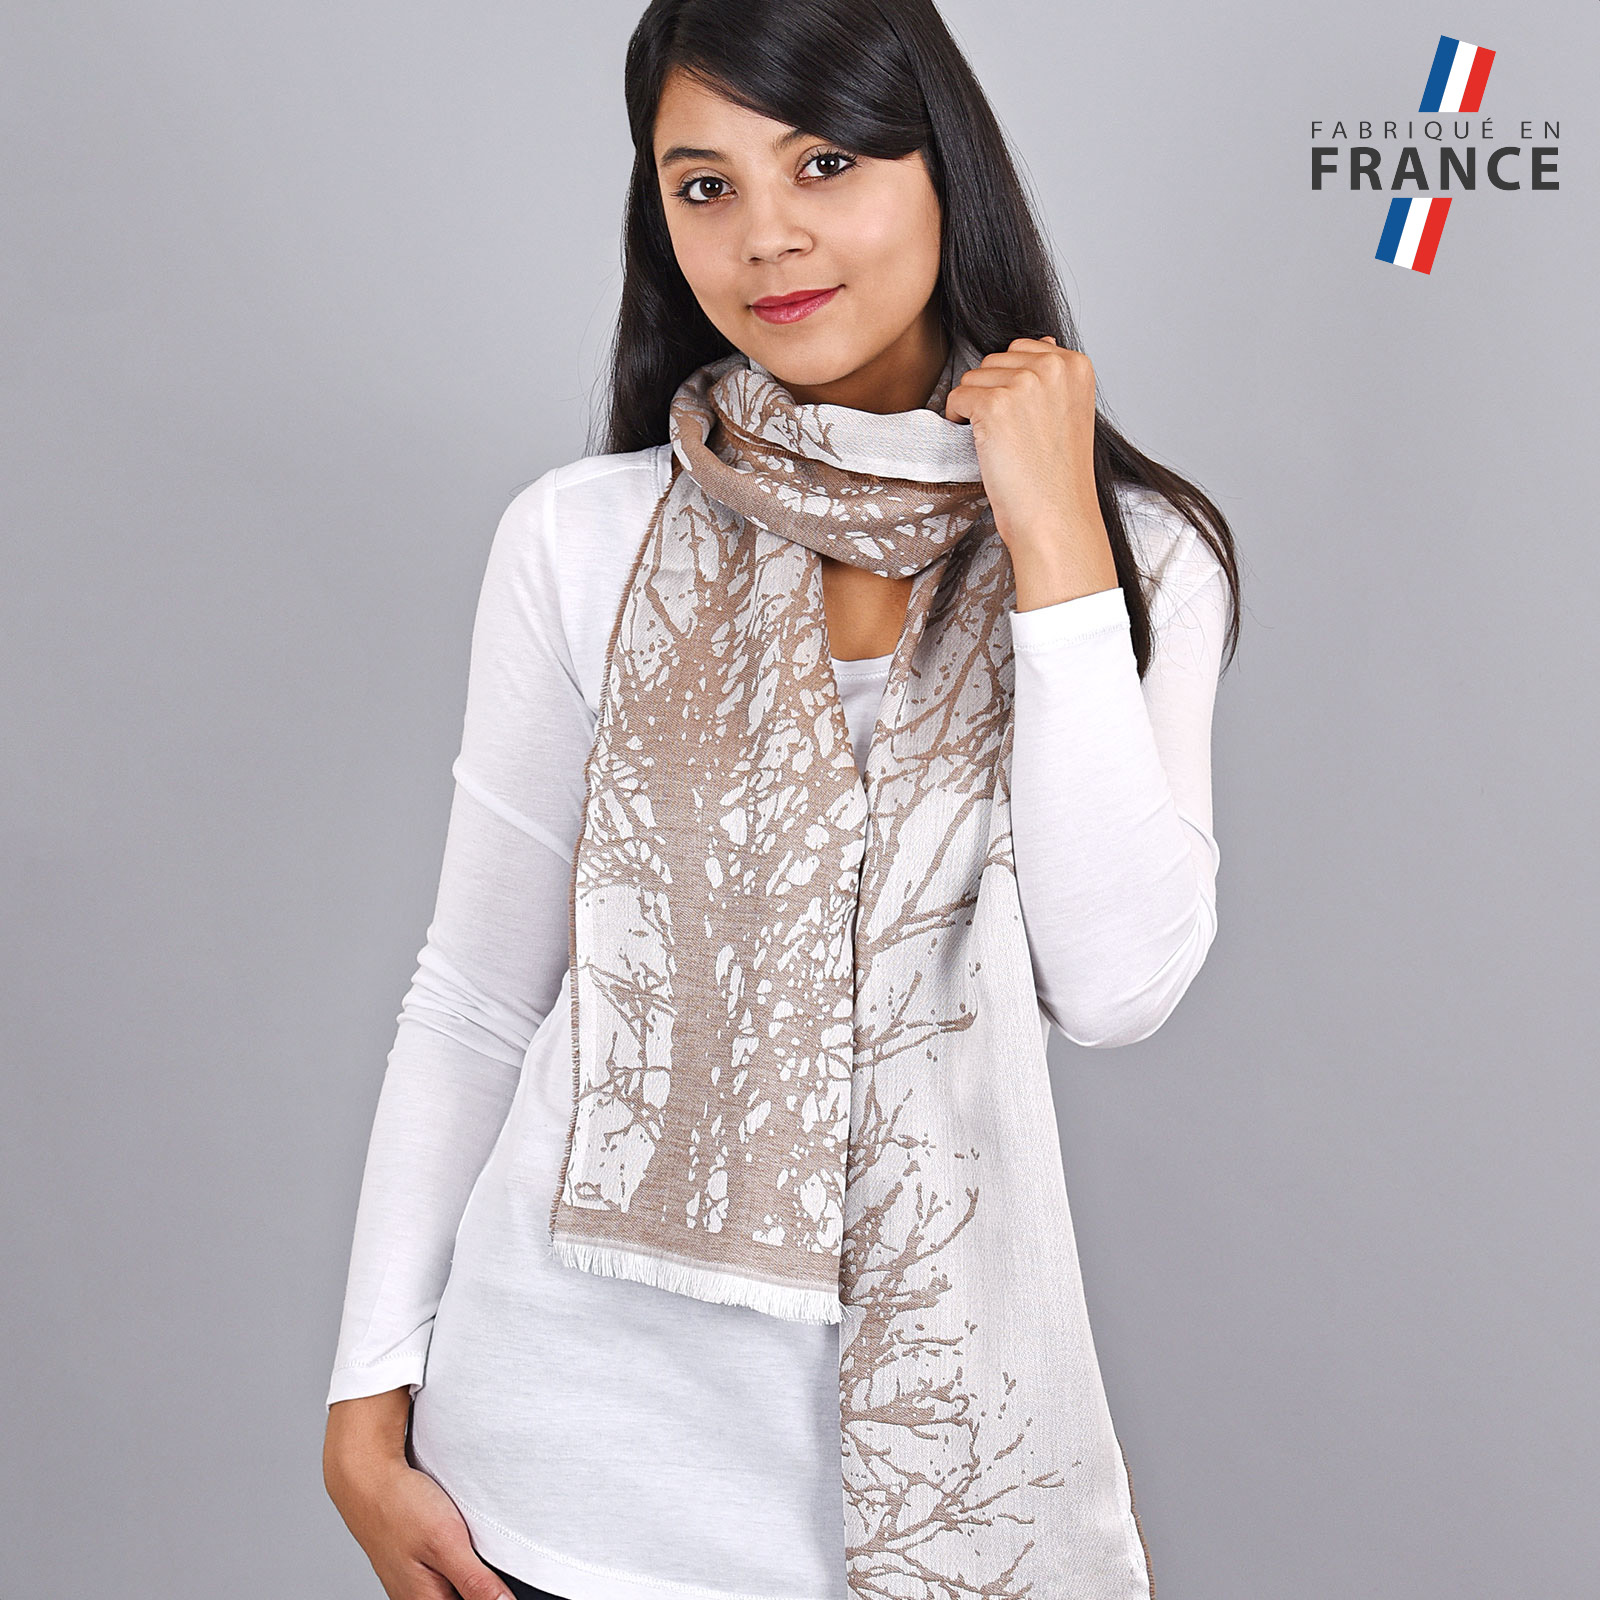 AT-04181-VF16-LB_FR-echarpe-femme-taupe-qualicoq-fabrication-france